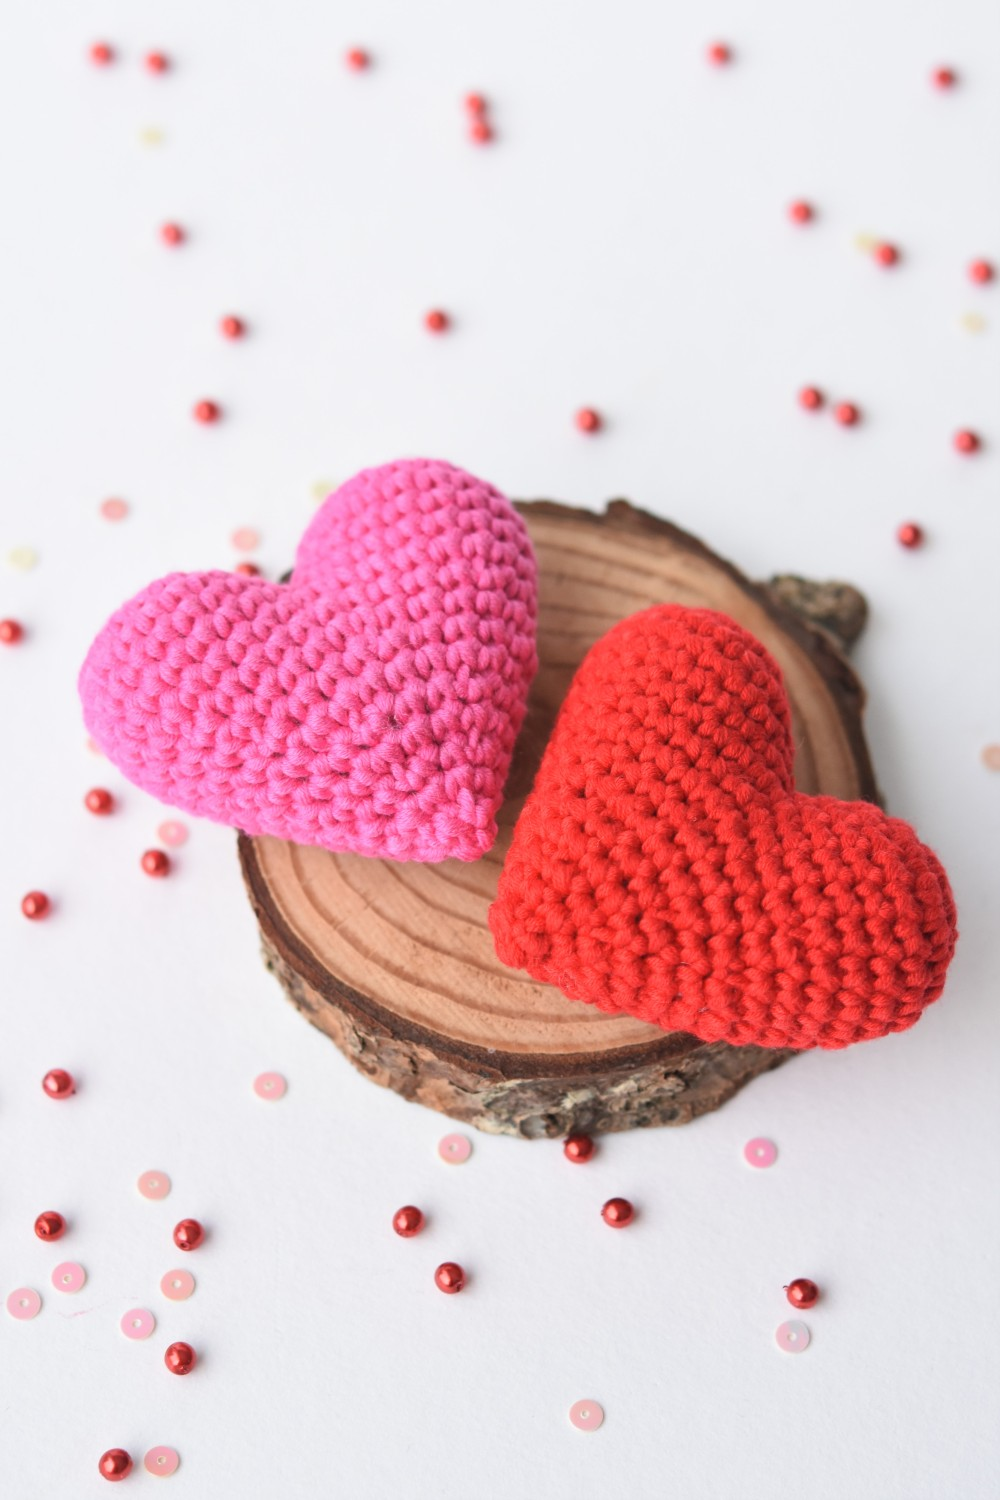 Mini Amigurumi Heart Pattern | Crochet valentine patterns, Crochet ... | 1500x1000